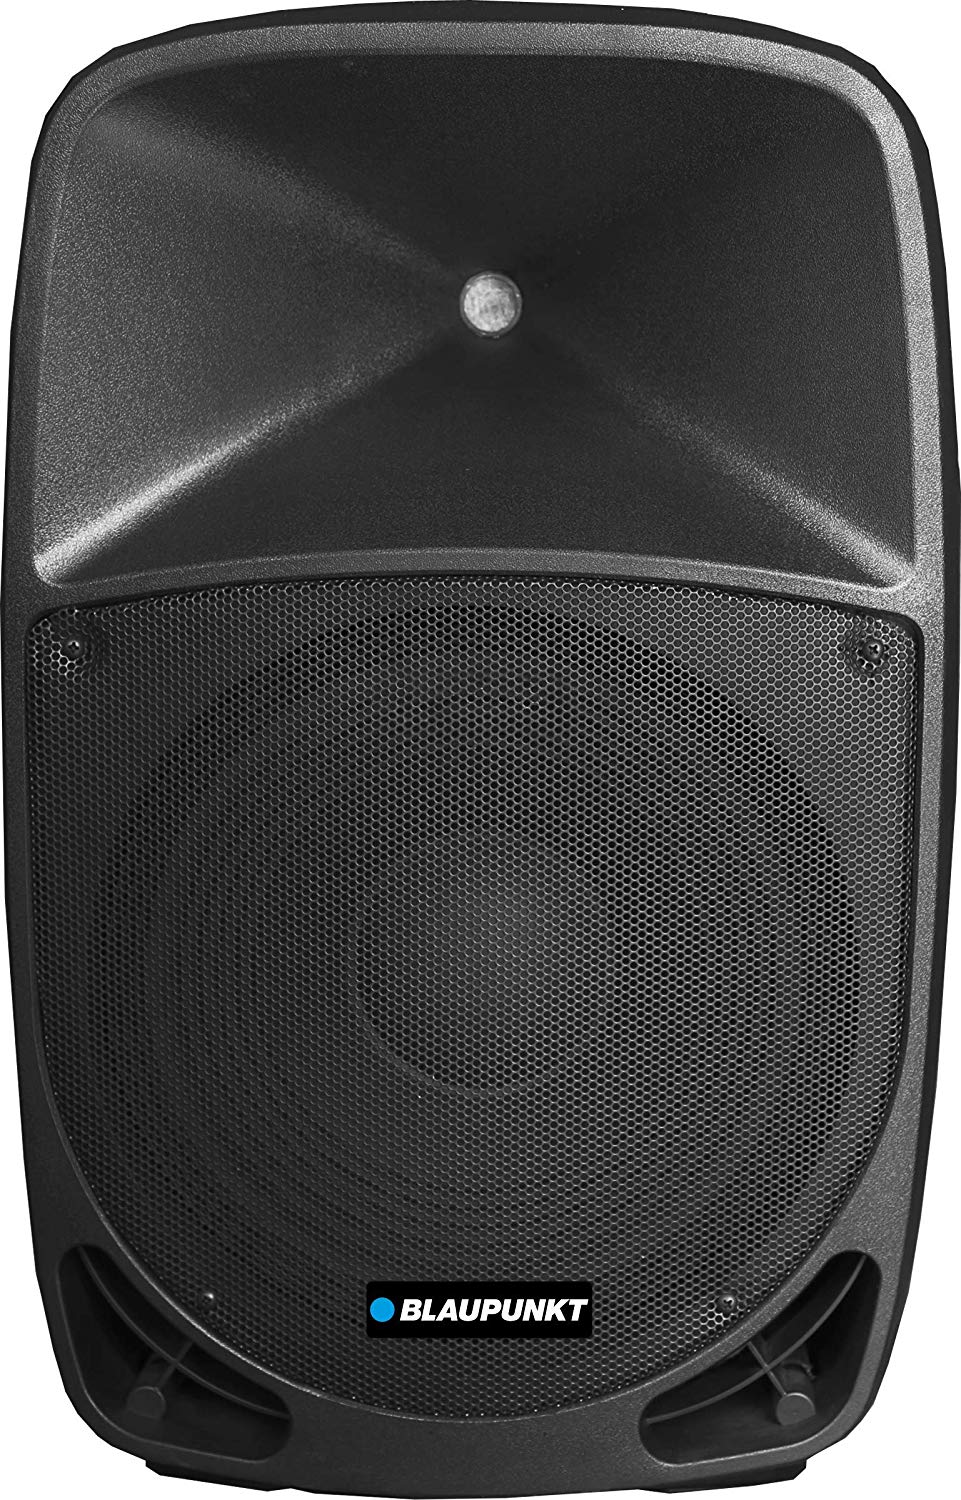 "Blaupunkt Bluetooth 12"" Powered Speaker"